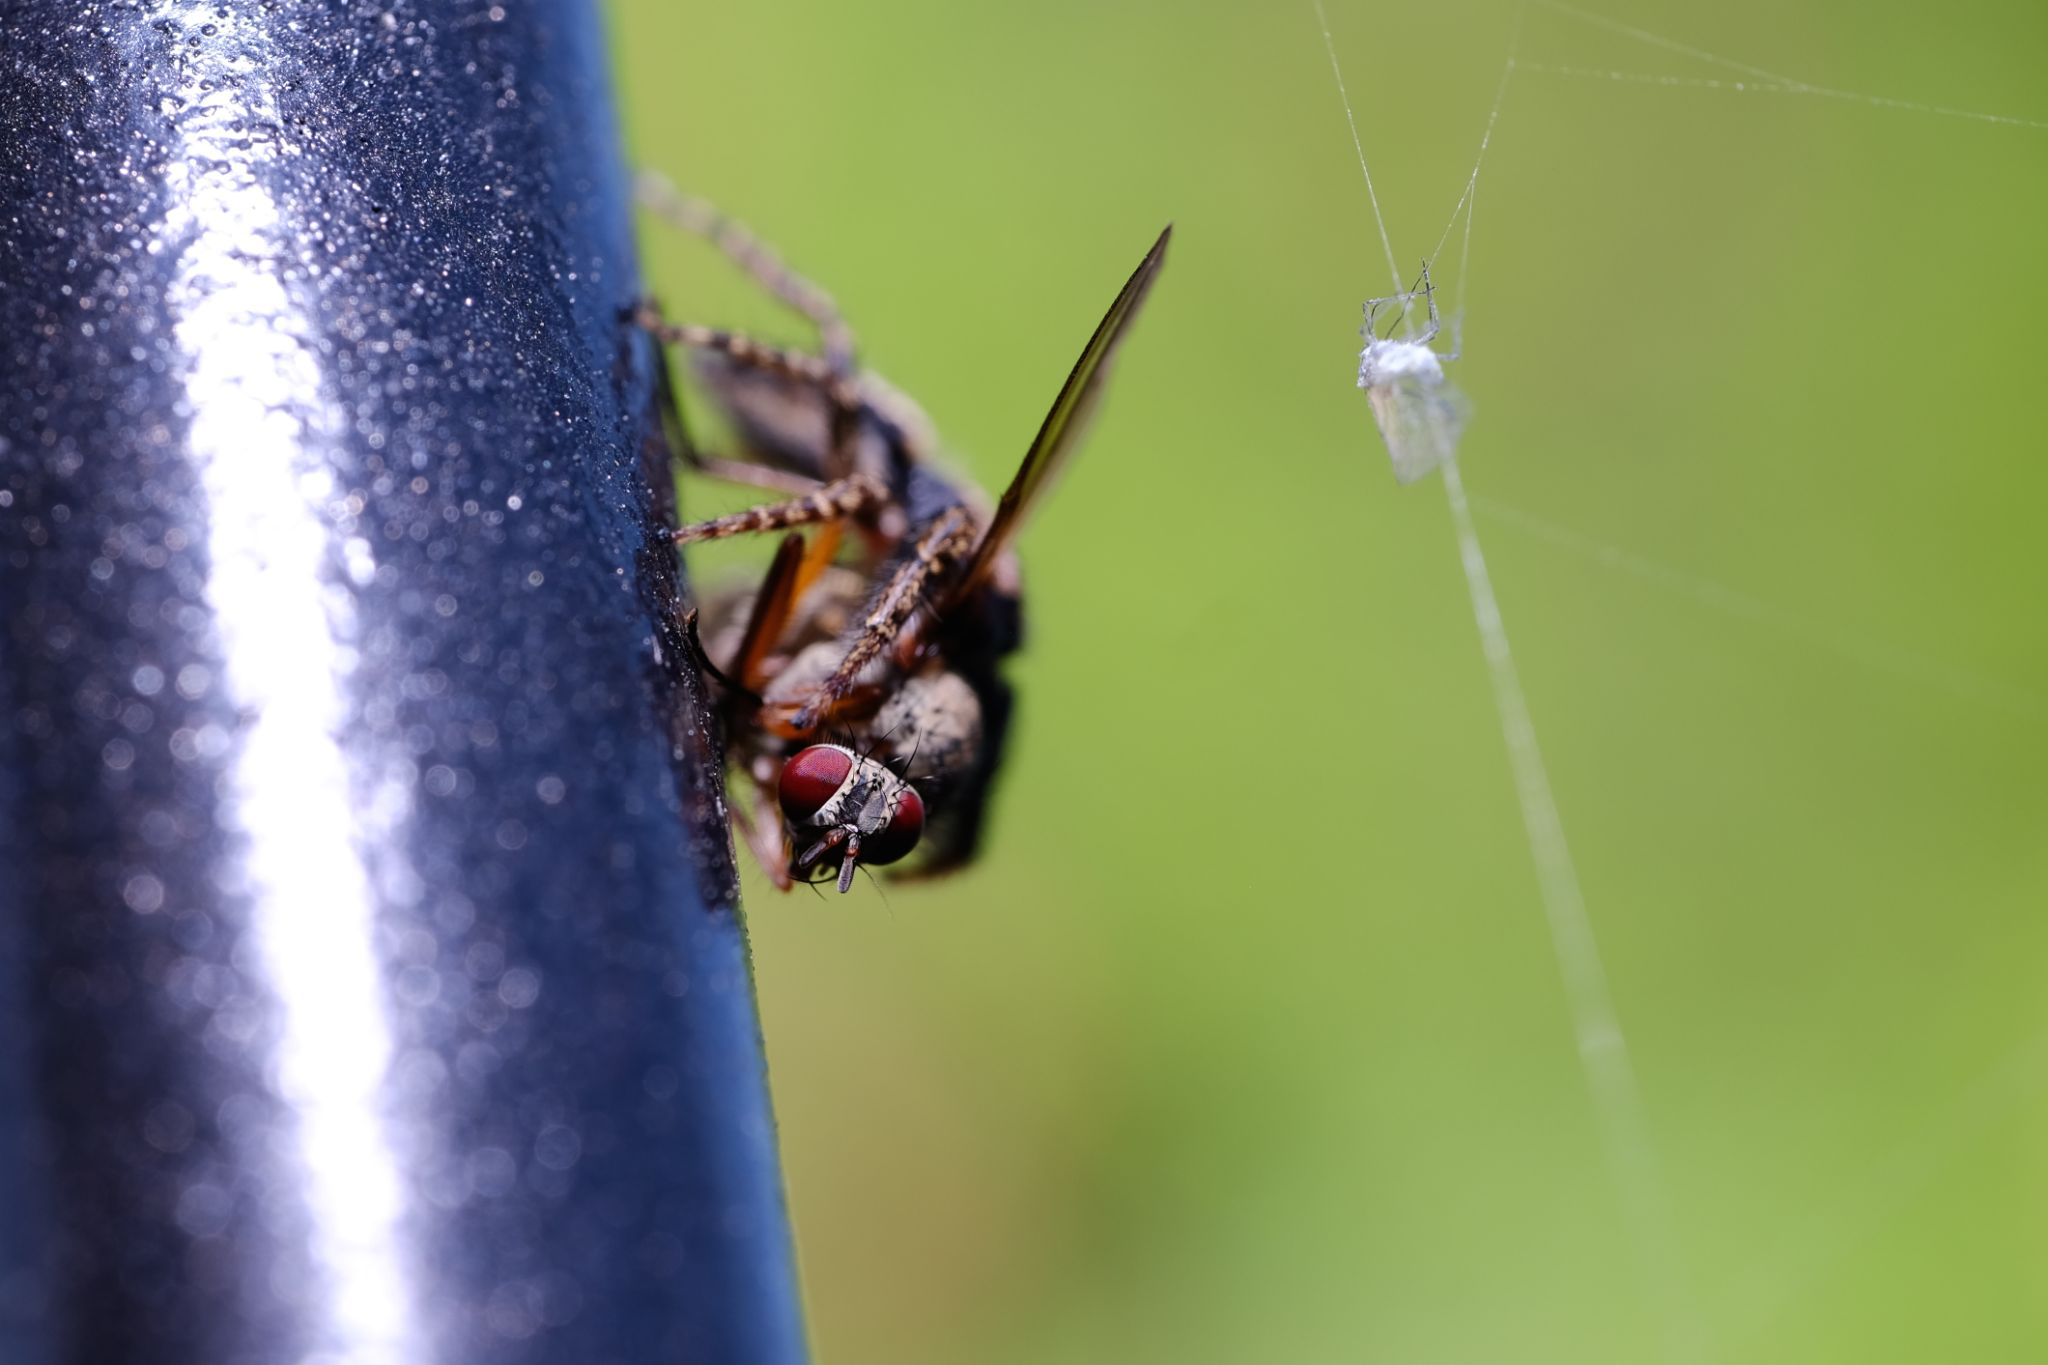 When the spyder caught the fly by stockografie